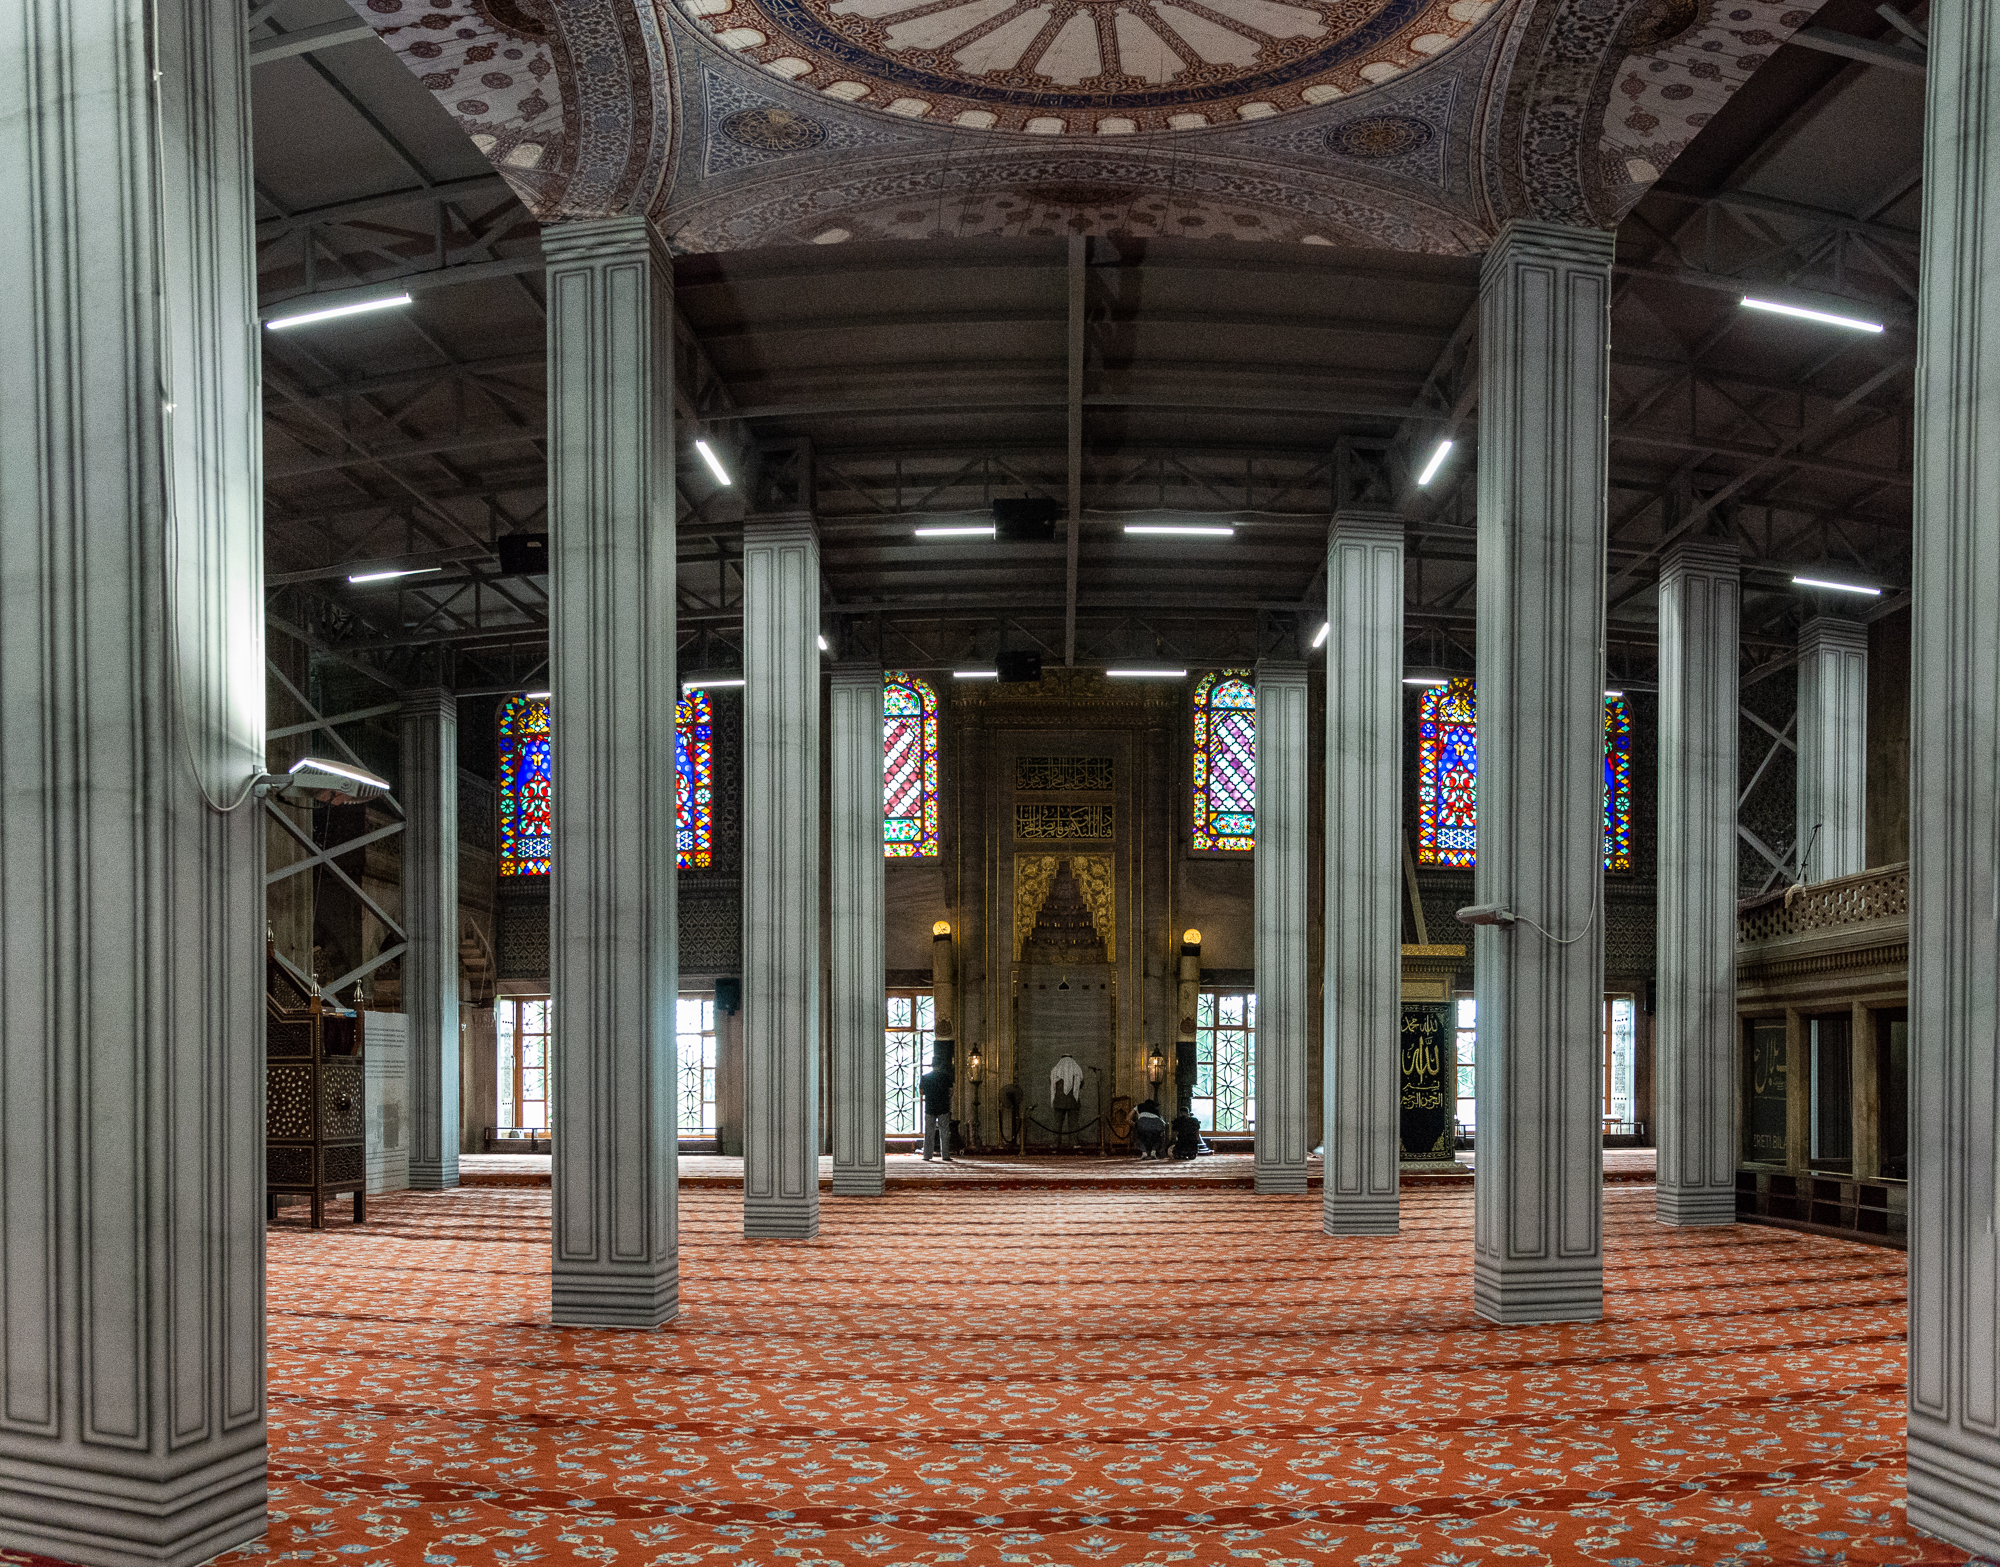 The main prayer area in the mosque.